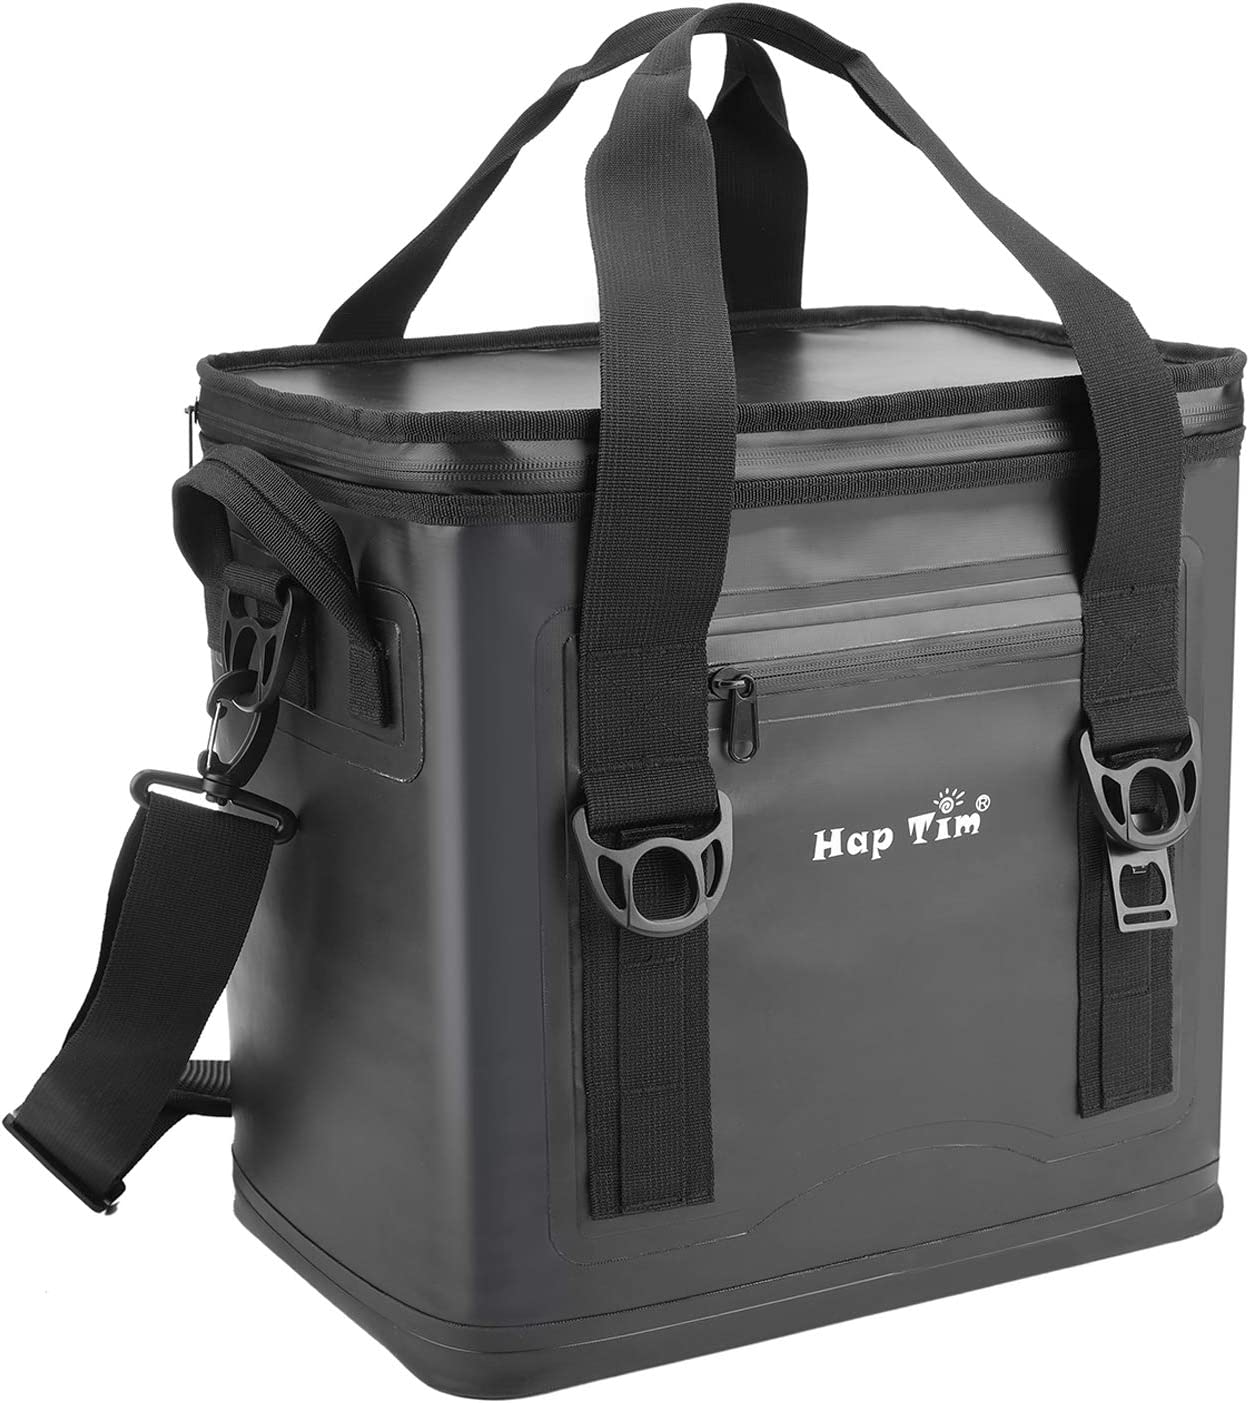 Hap Tim Cooler Bag 30 Cans Leak-Proof Soft Cooler, Portable Ice Cooler for Beach, Hiking, Camping, Picnic, Party, Sports, Sea Fishing TL52005-DG